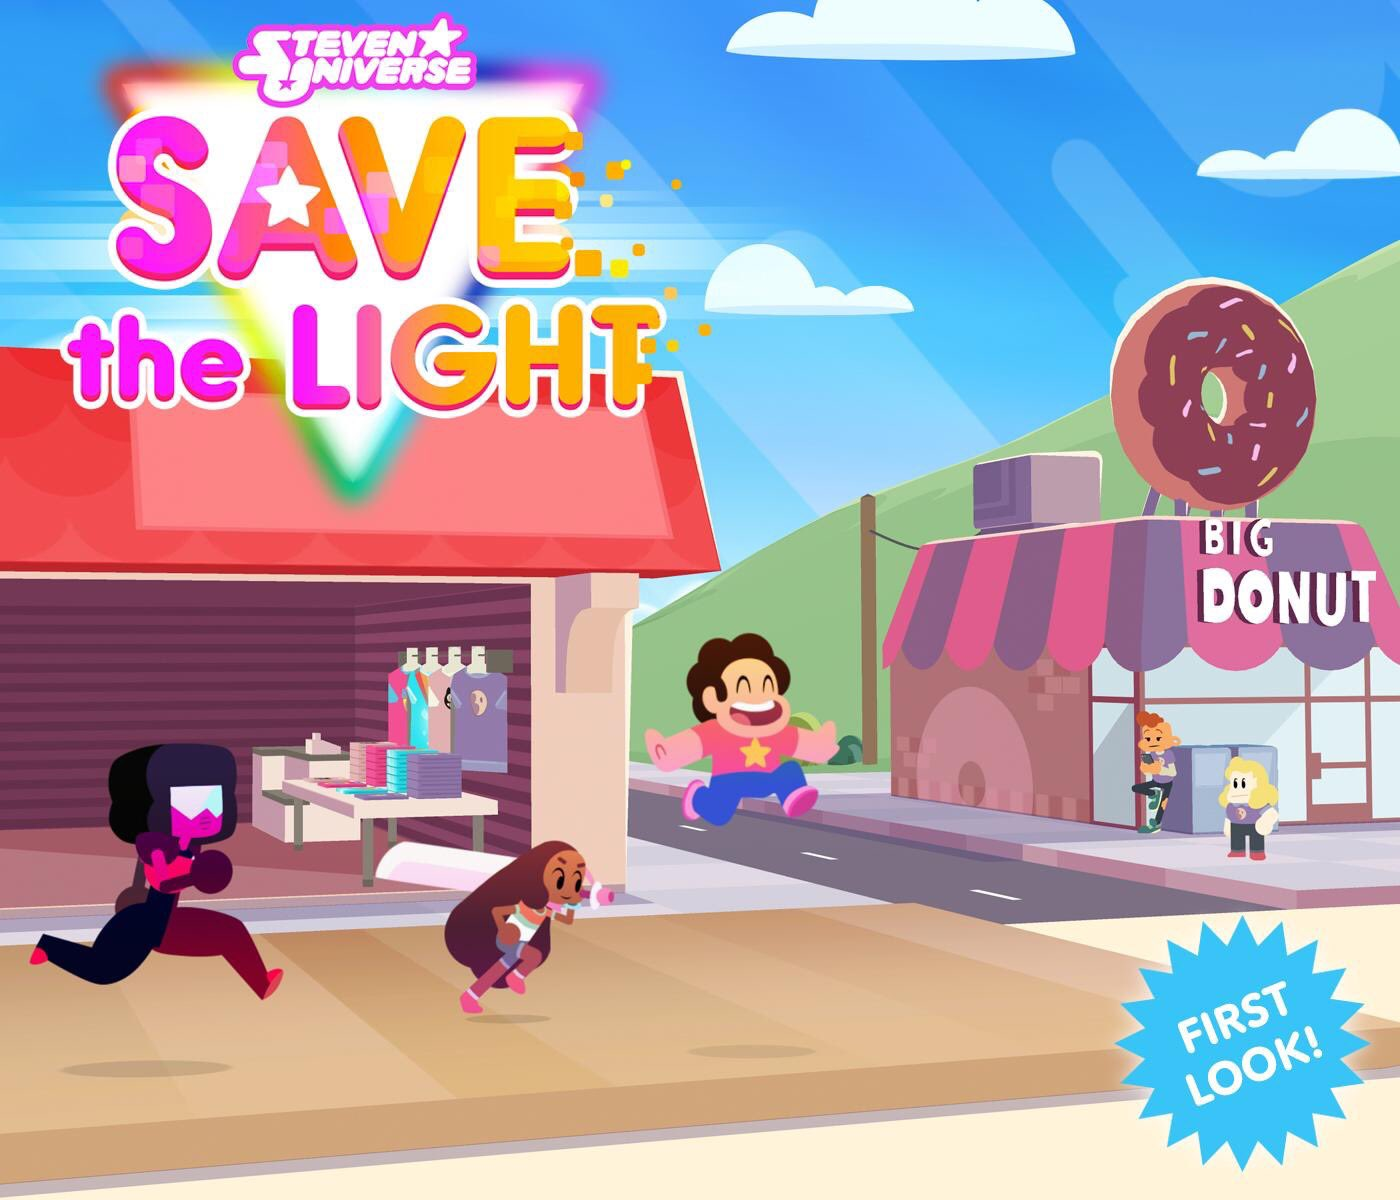 RT @Grumpyface: @EstelleDarlings is awesome in #StevenUniverse #SaveTheLight game! Great working with you! 😎 https://t.co/RagvLChOsr